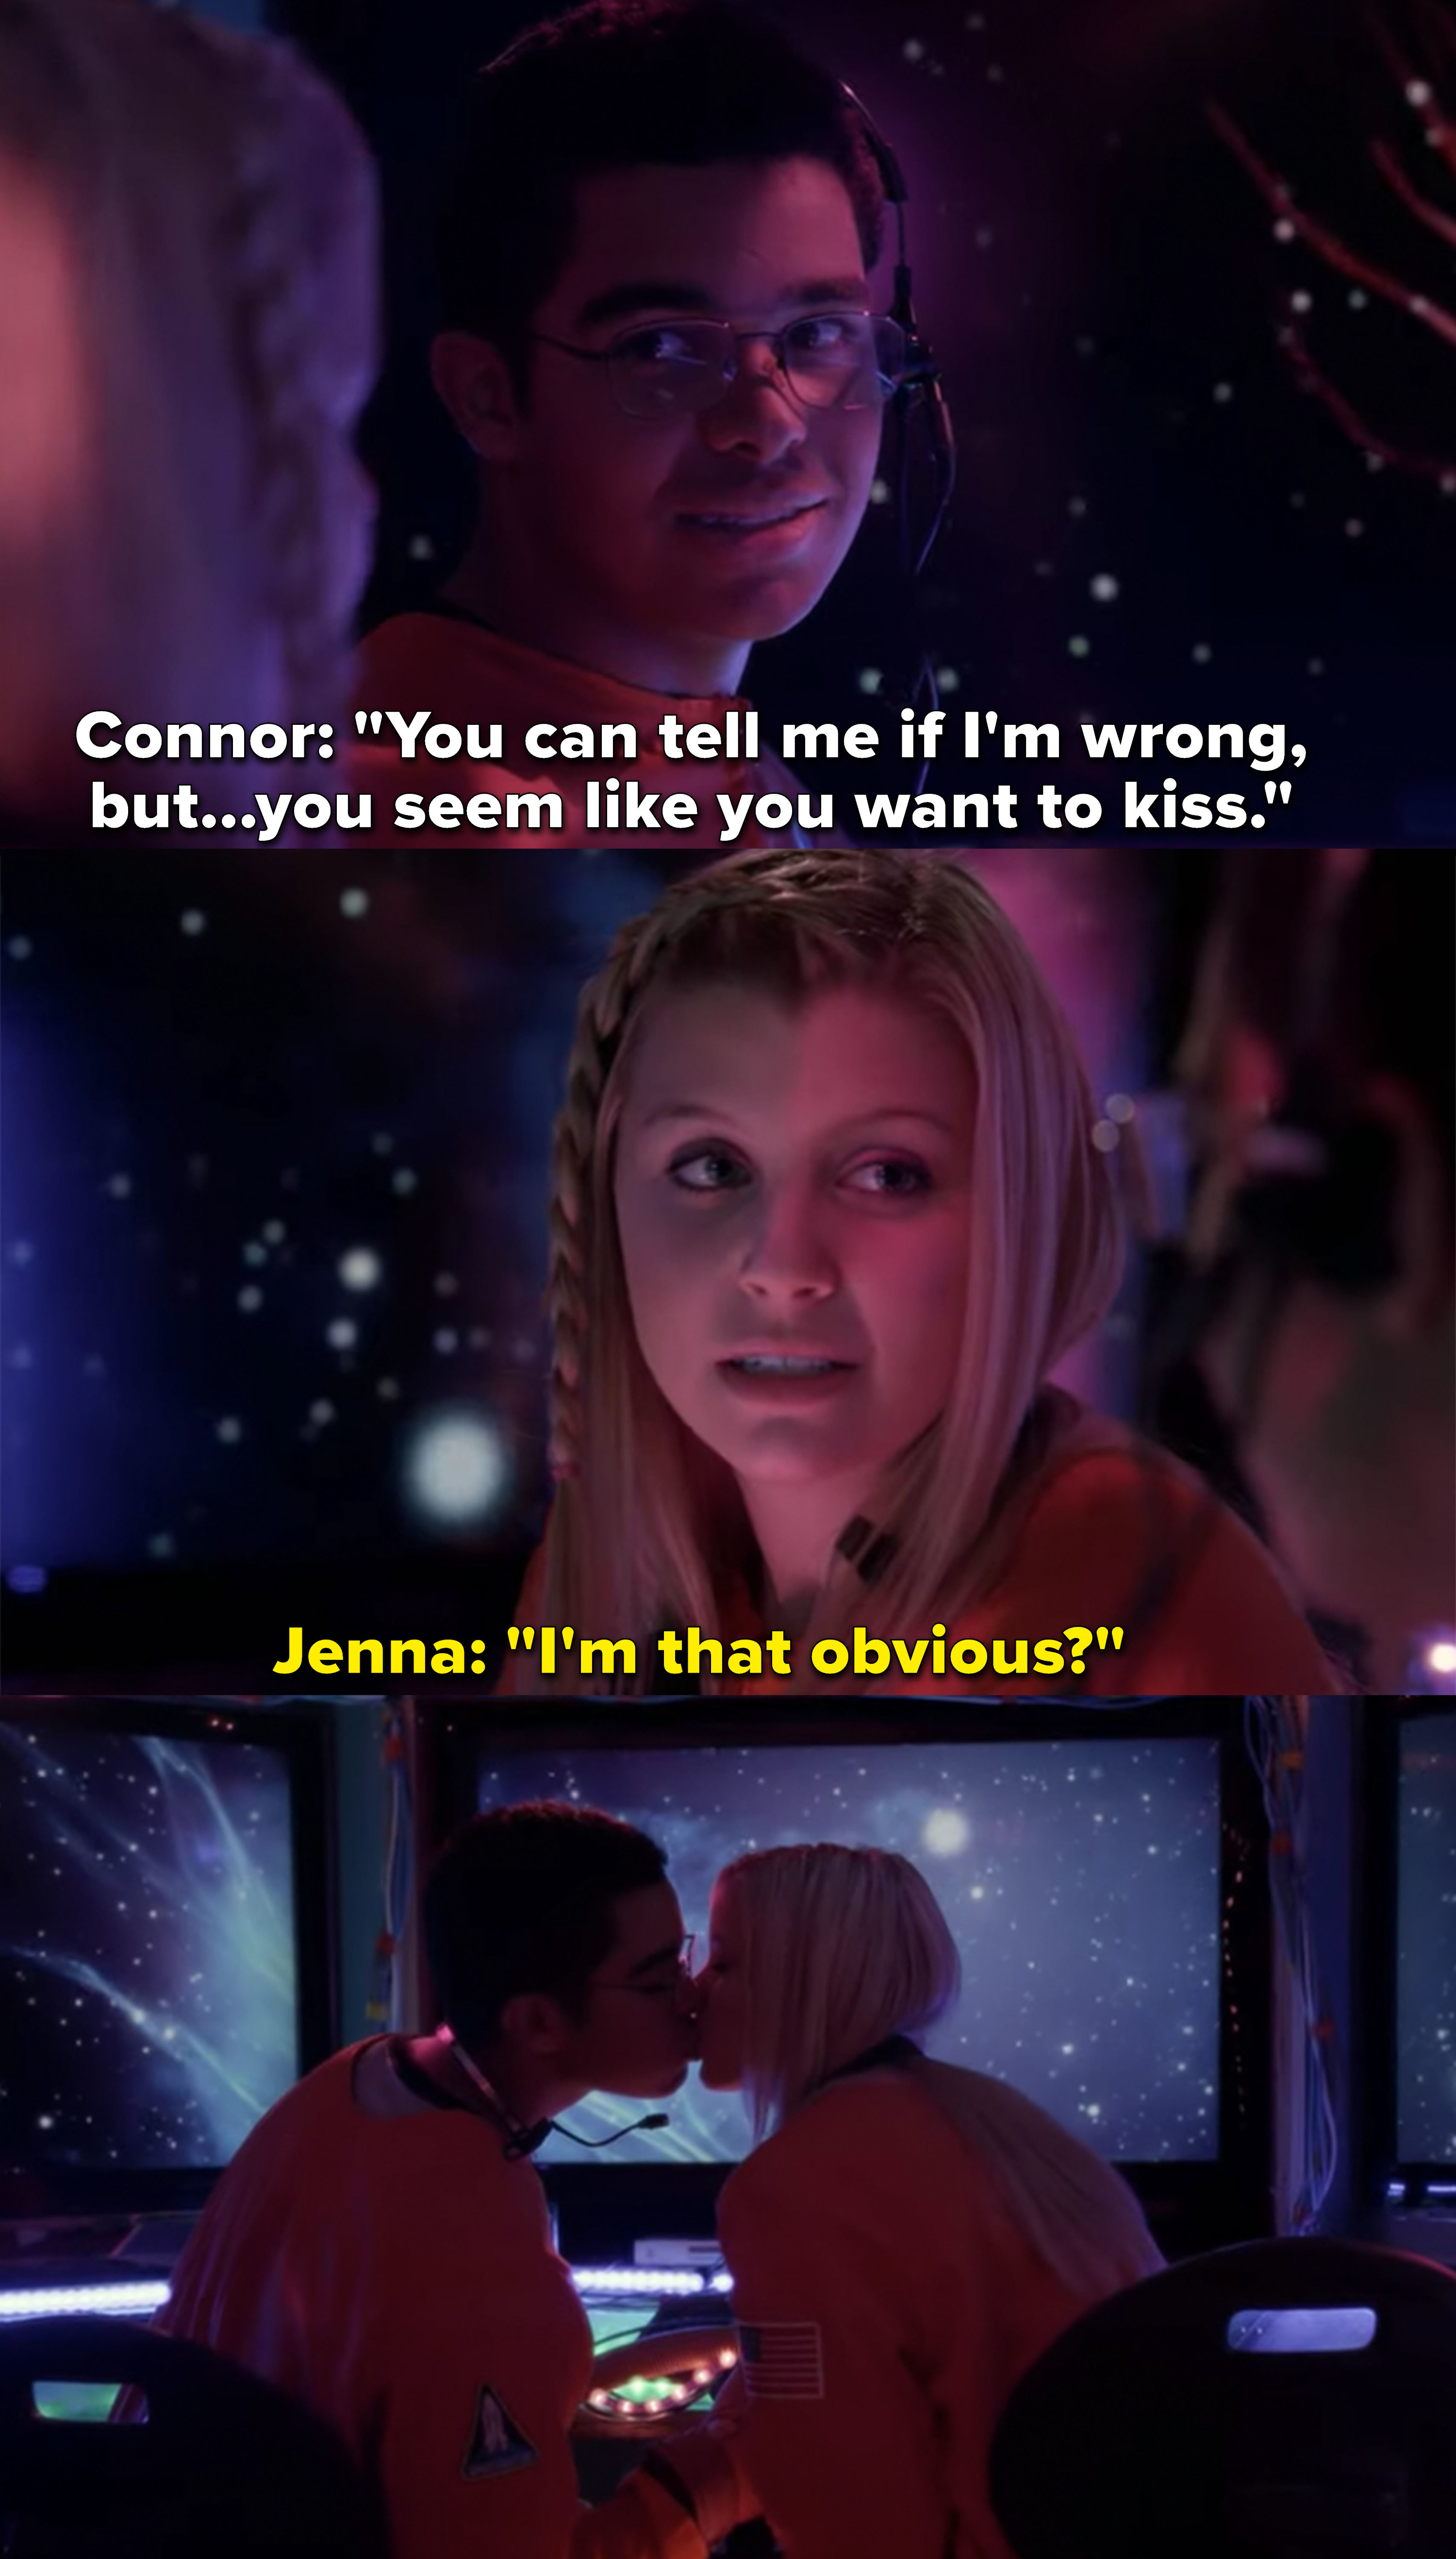 "Connor: ""Tell me if I'm wrong, but you seem like you want to kiss,"" Jenna: ""I'm that obvious?"", they kiss against the outer space backdrop"